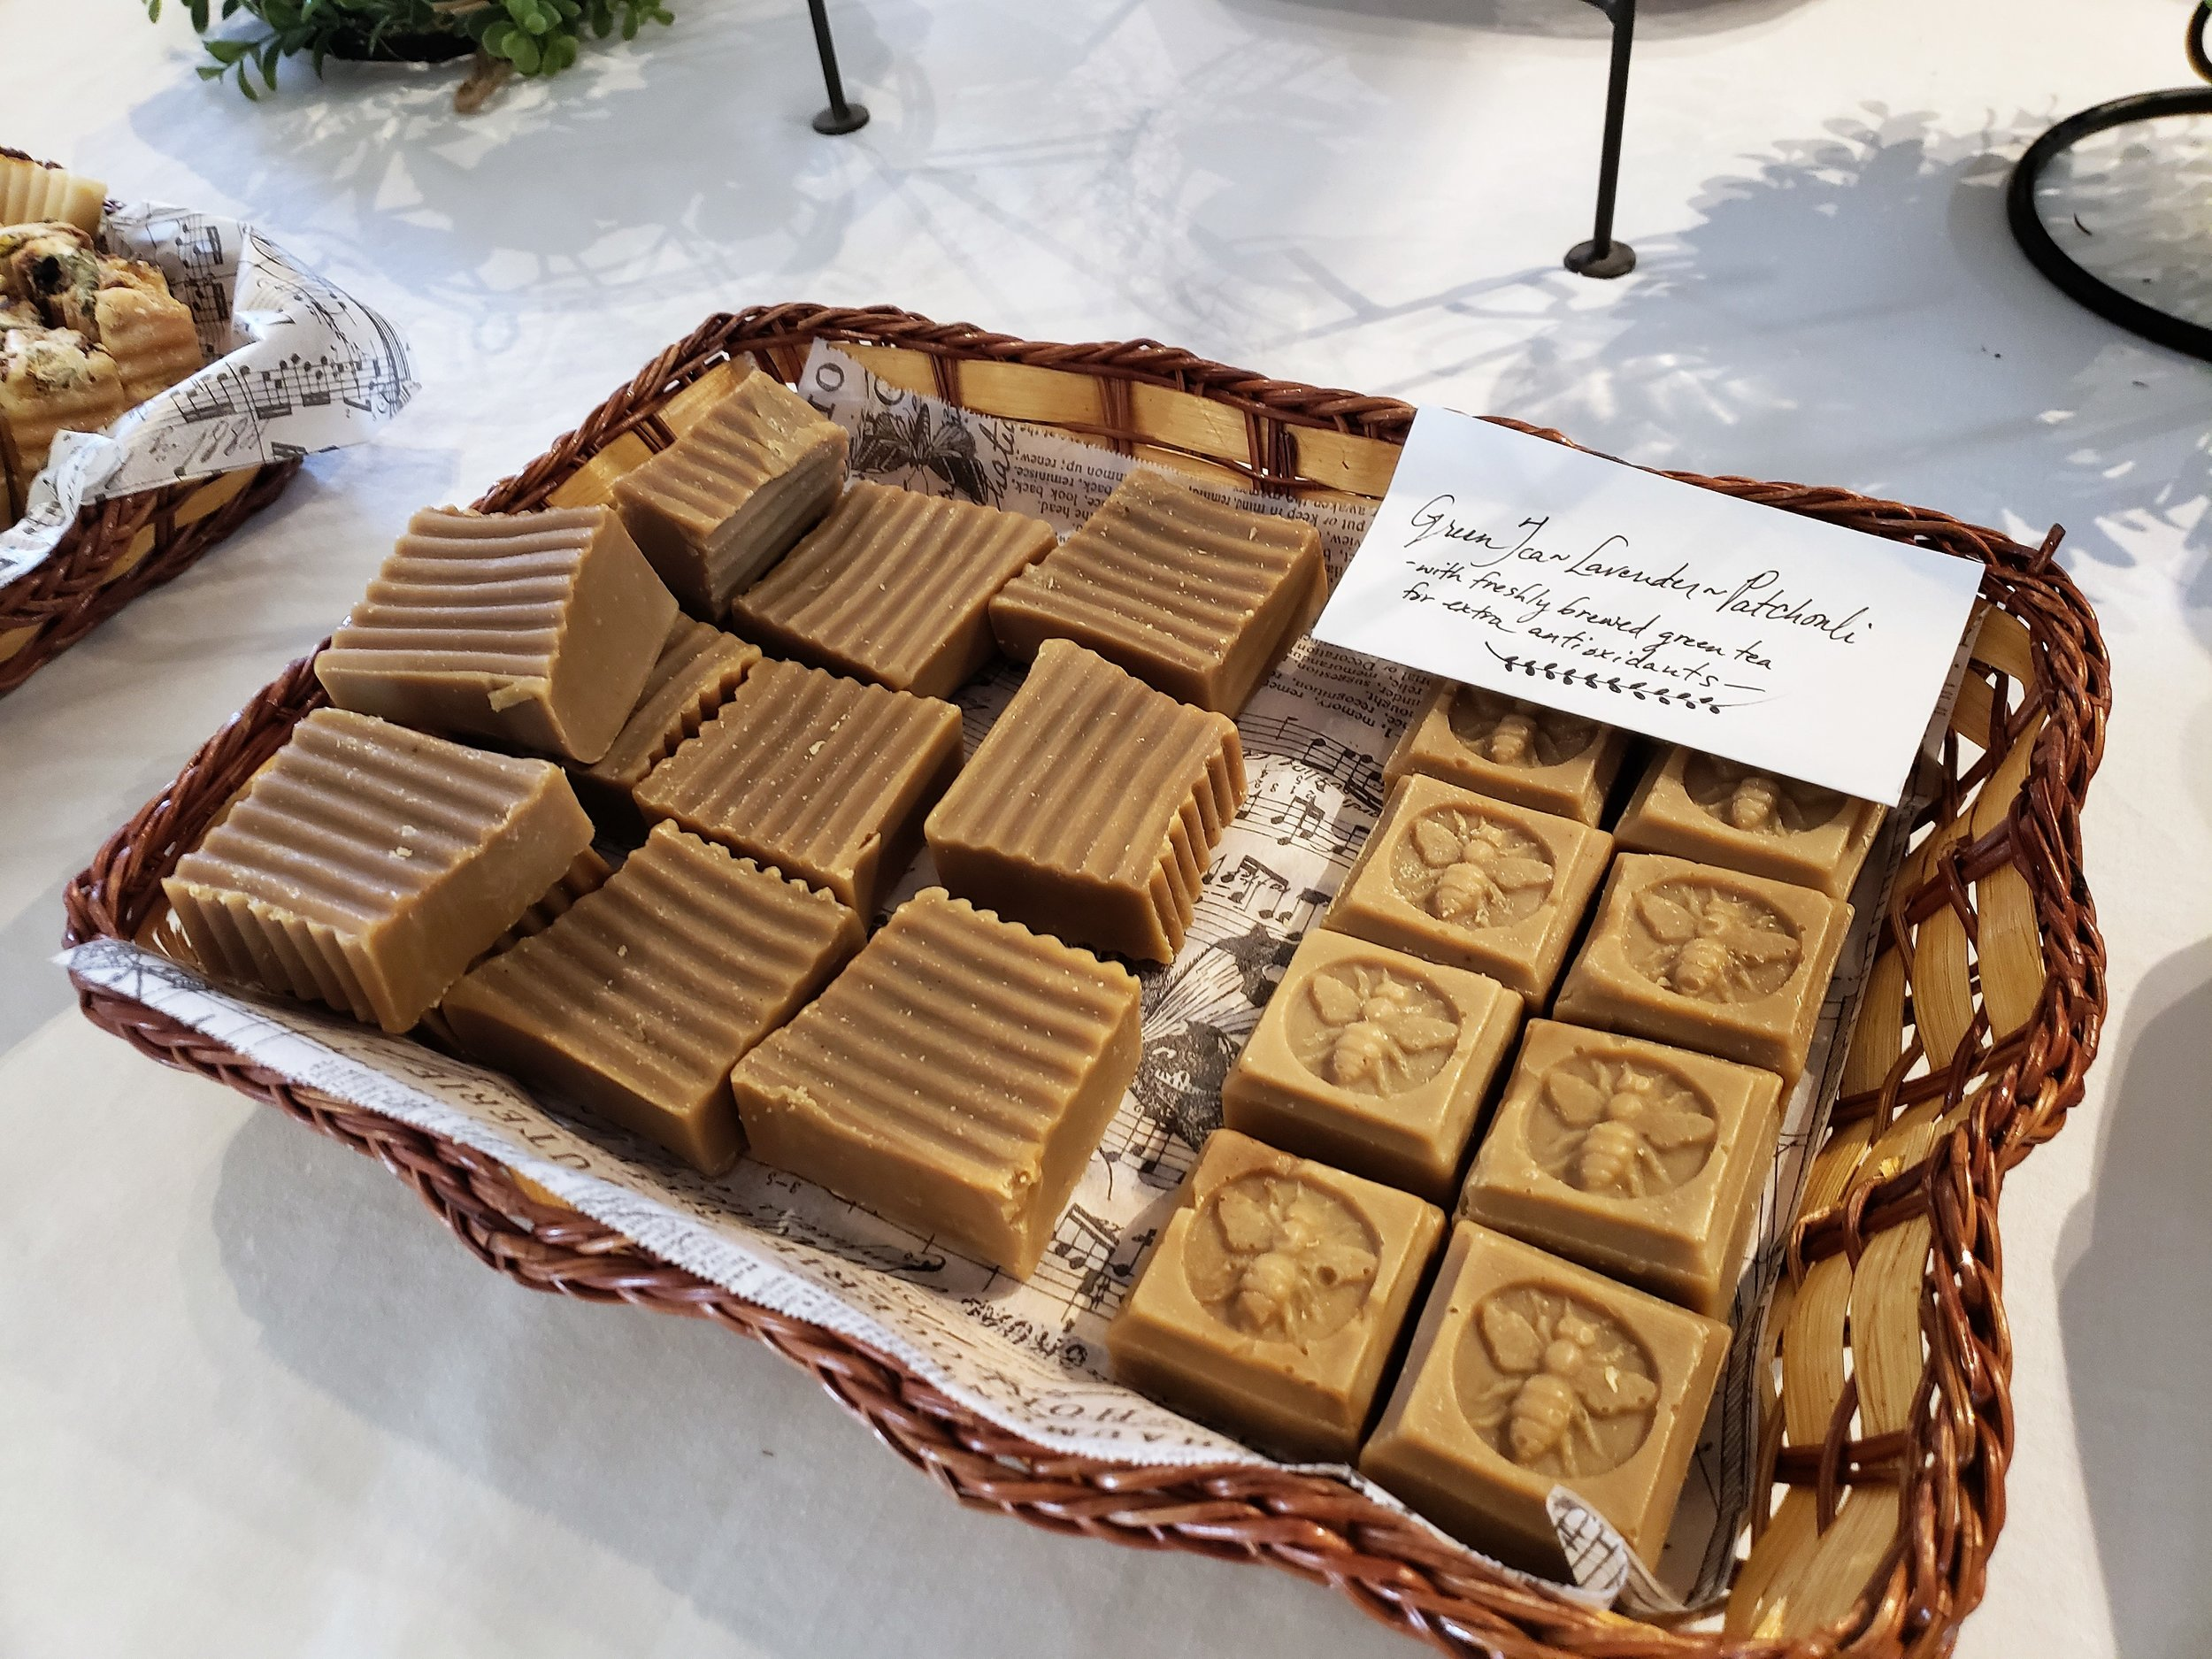 eden's promise goat's milk soaps ROSEWOOD farm shop fridays sisterdale boerne texas sowing seeds blog